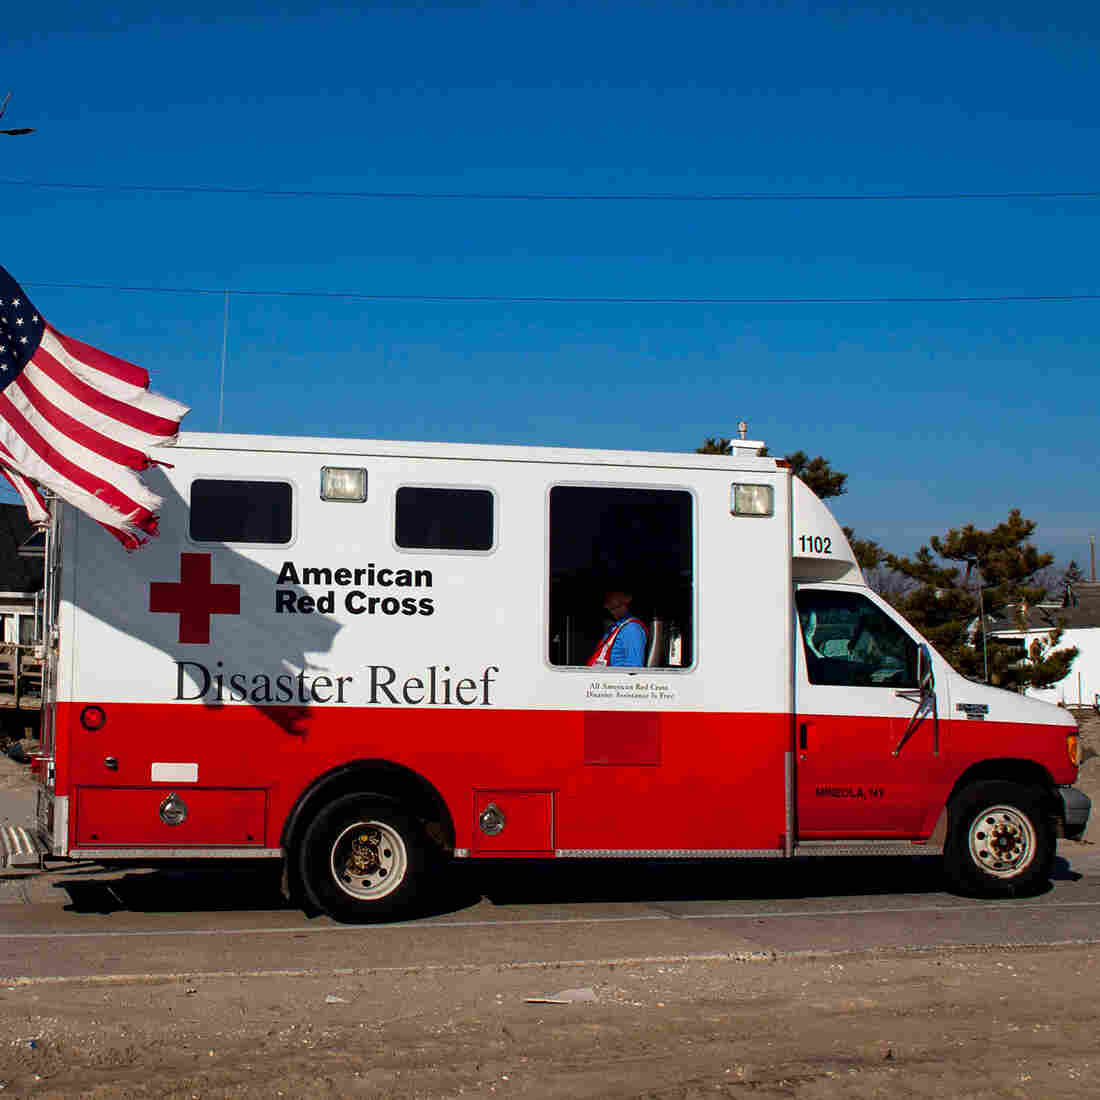 In the aftermath of Superstorm Sandy, a former Red Cross official says, as many as 40 percent of the organization's emergency vehicles were assigned for public relations purposes. This photo, which shows one of the trucks in Long Island, N.Y., in January 2013, is one example of the many publicity photos taken by the Red Cross.